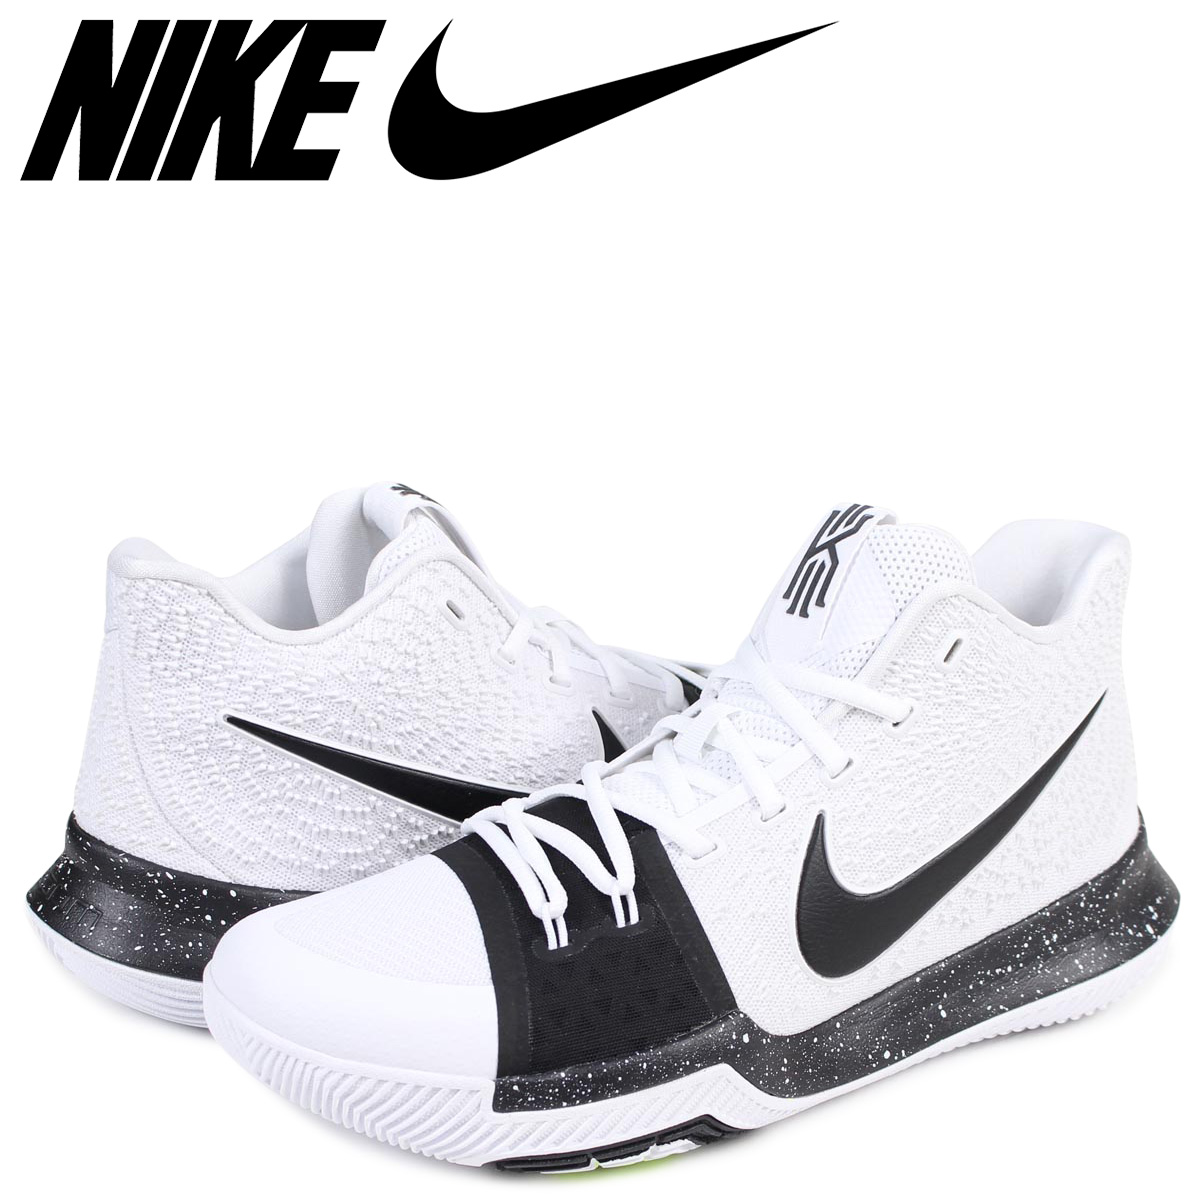 official photos 07cdf aad90 Nike NIKE chi Lee 3 sneakers men KYRIE 3 TB 917,724-100 chi Lee Irving white